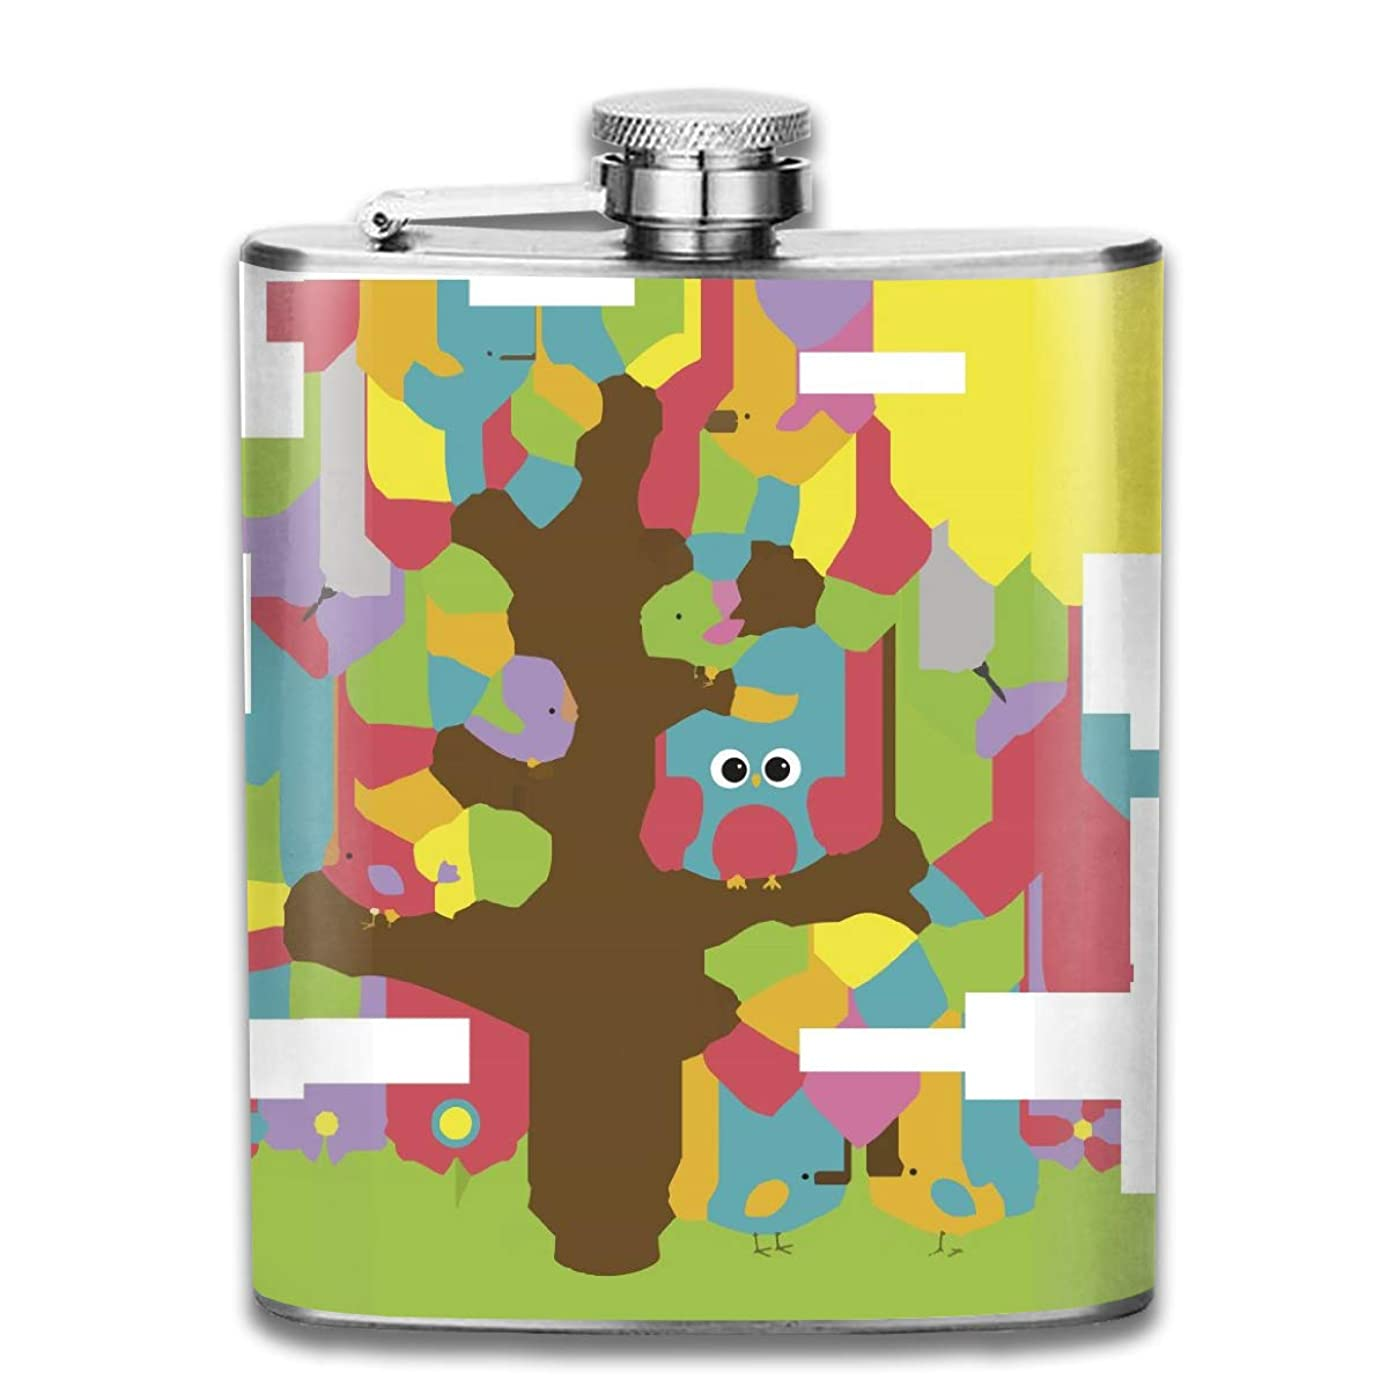 FTRGRAFE Summer Owl Tree Outdoor Portable 304 Stainless Steel Leak-Proof Alcohol Whiskey Liquor Wine 7OZ Pot Hip Flask Travel Camping Flagon for Man Woman Flask Great Little Gift